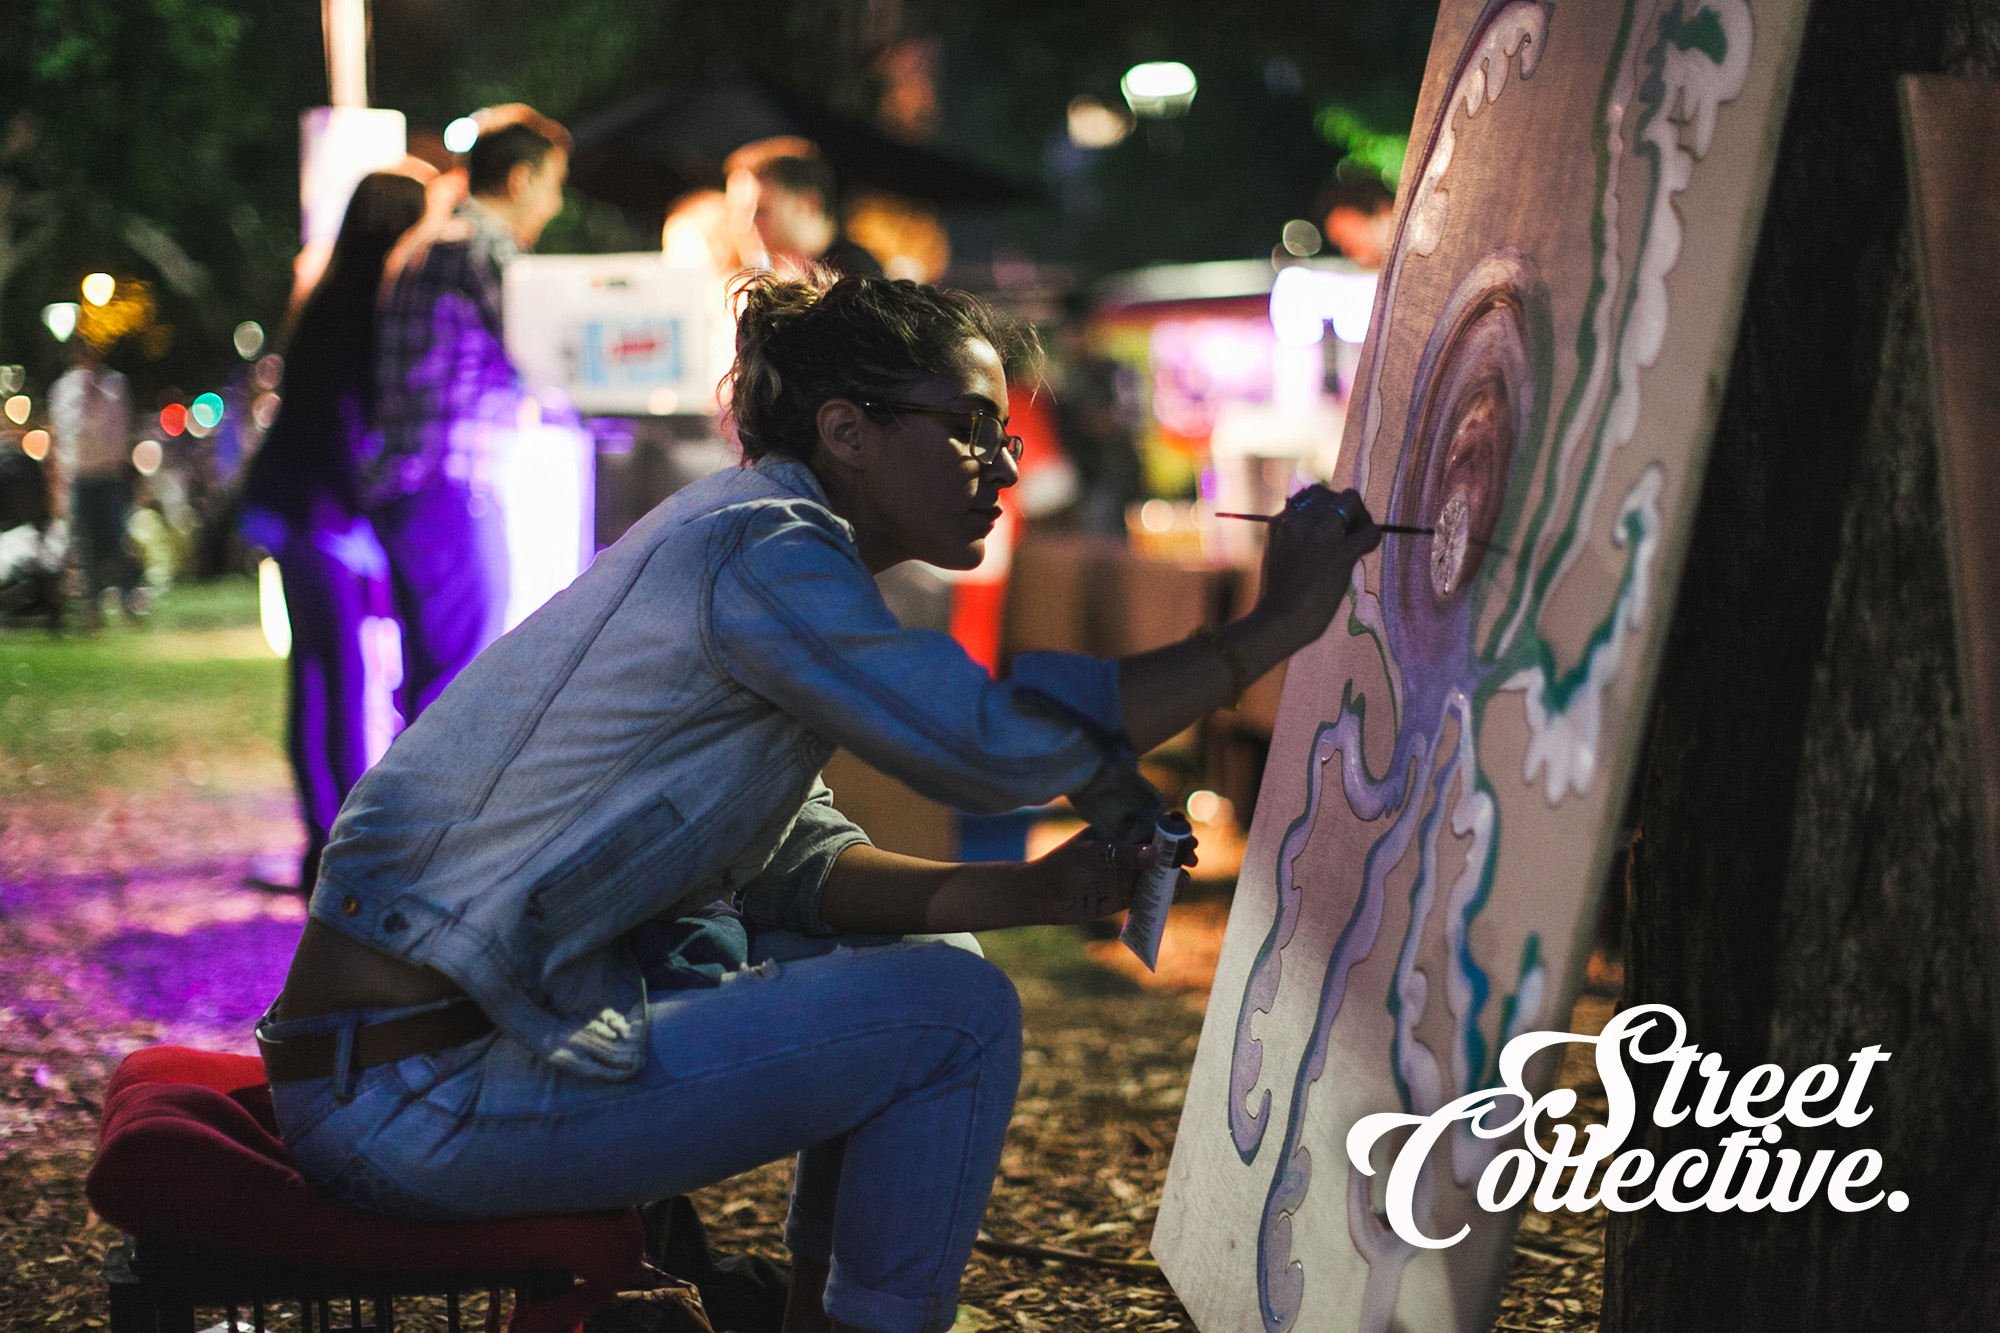 Street Collective 23